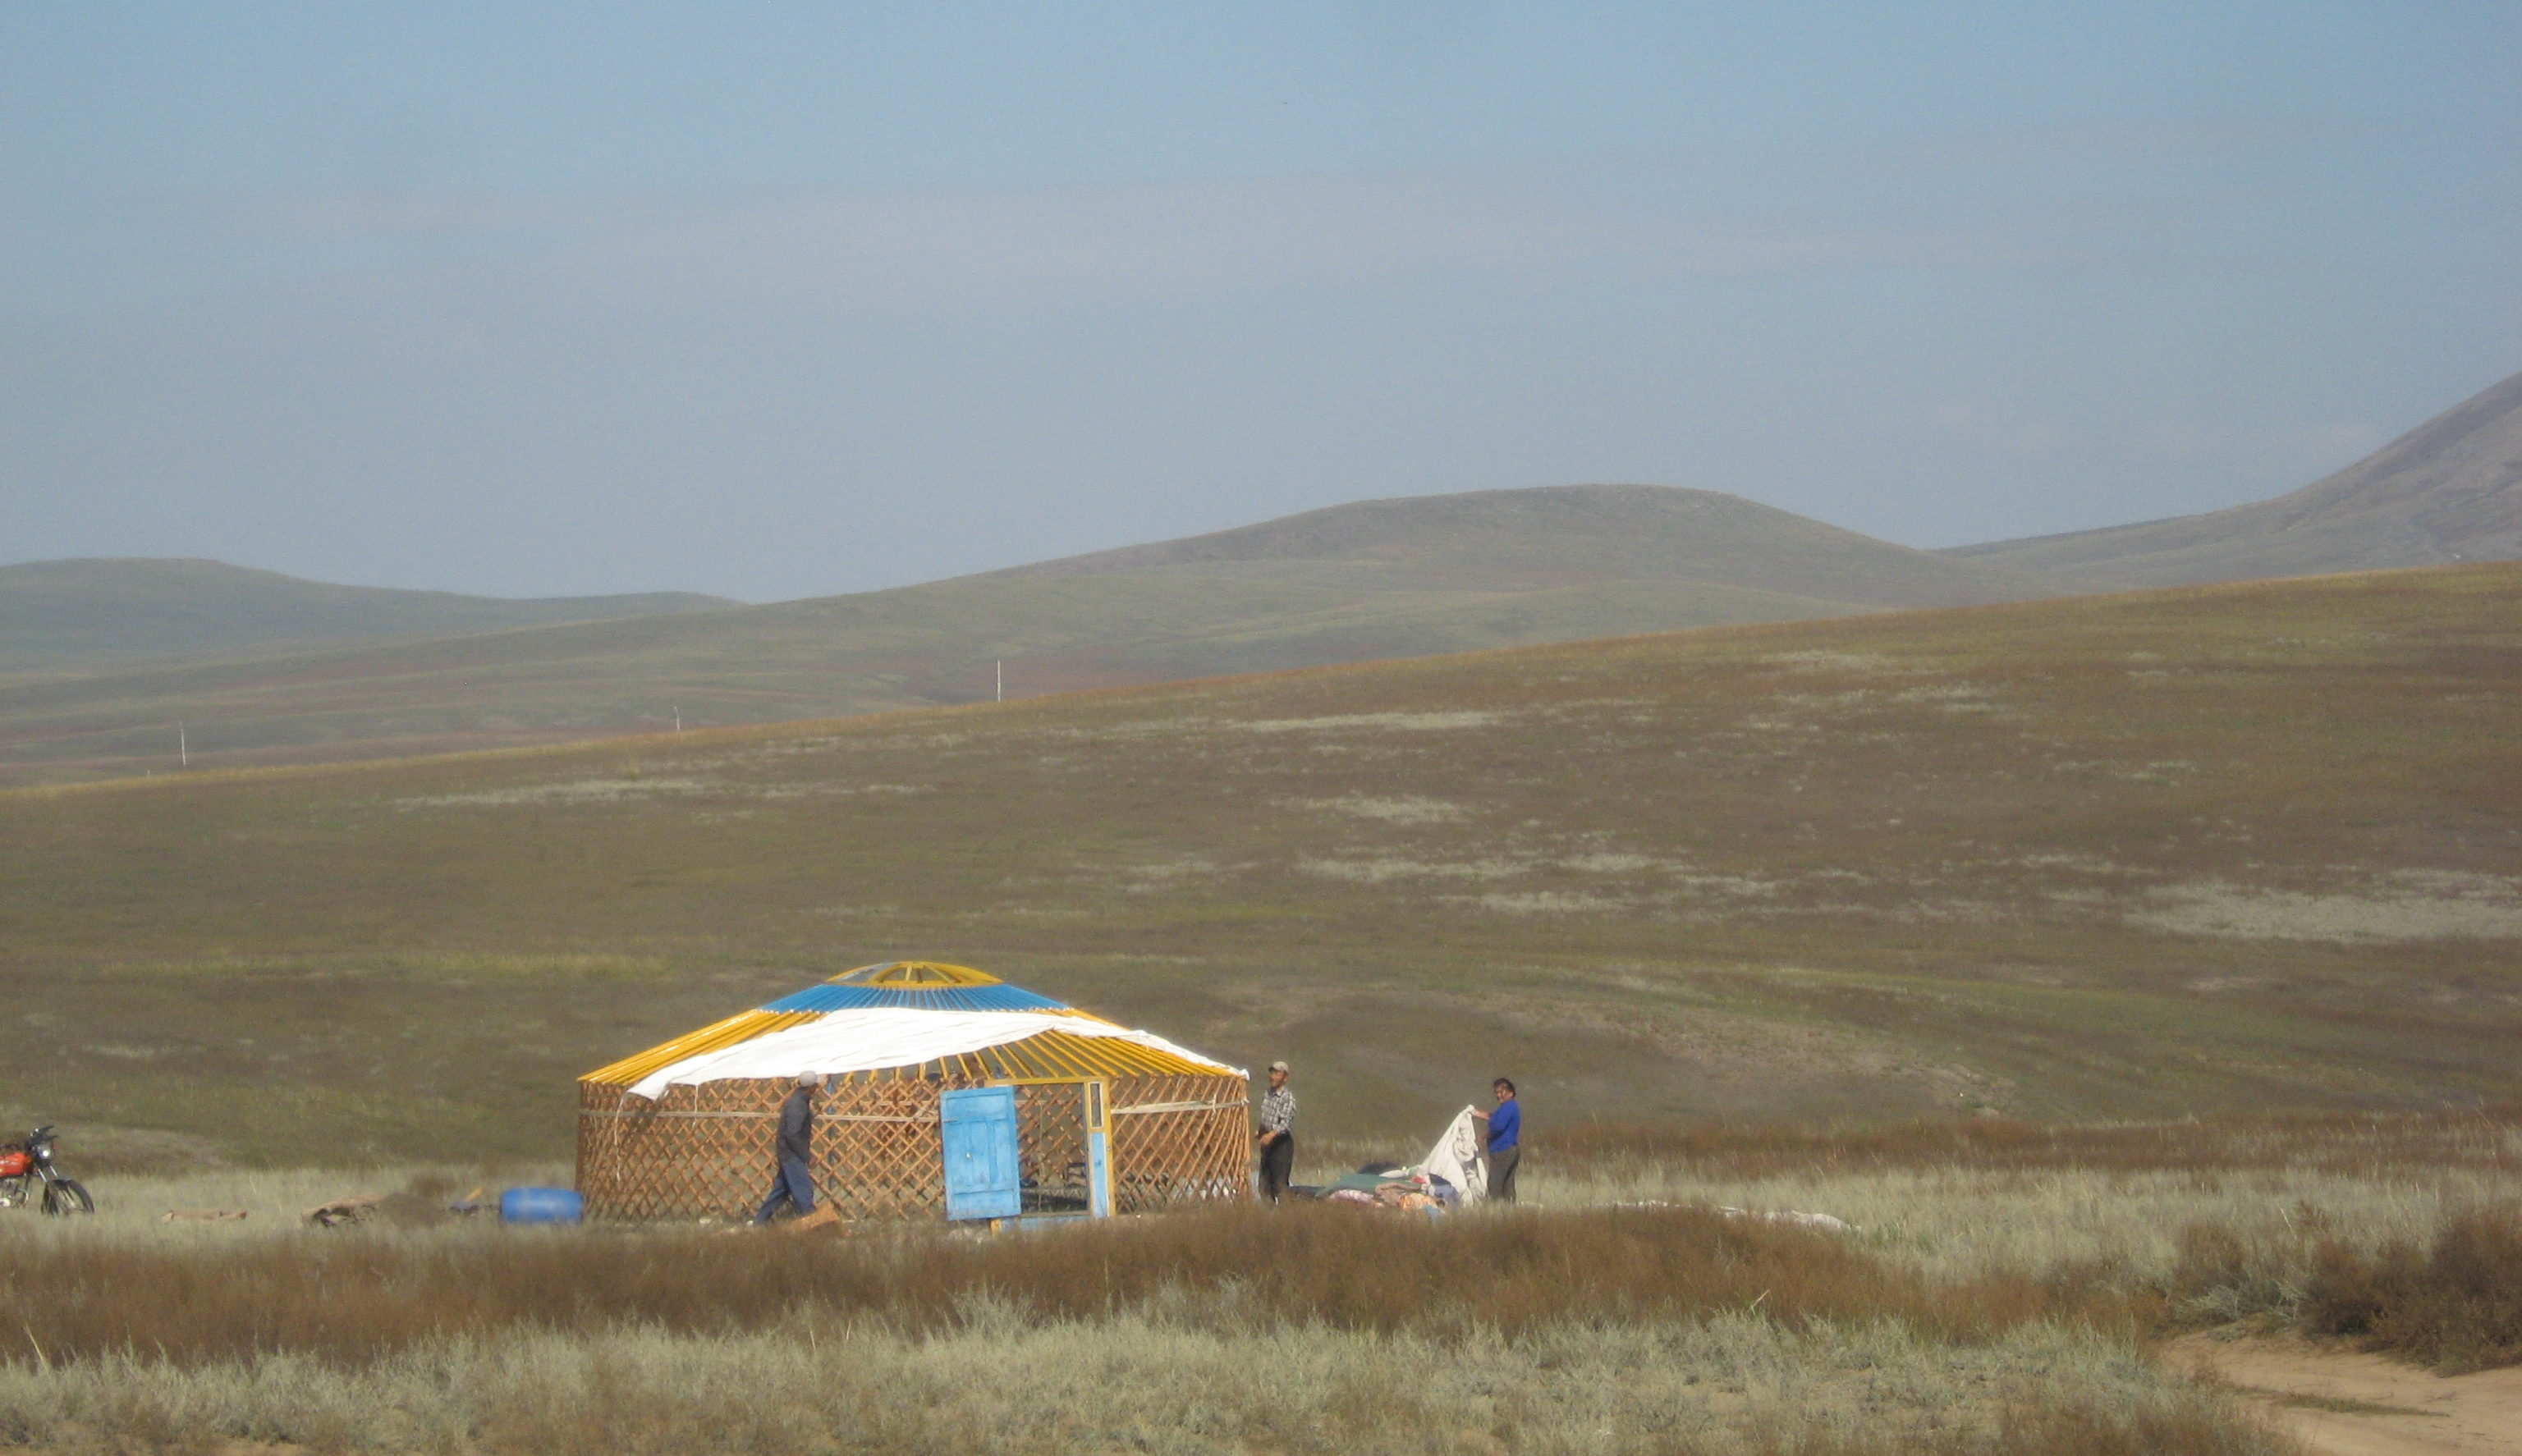 Mongols preparing for winter. The yurts gget disassembled